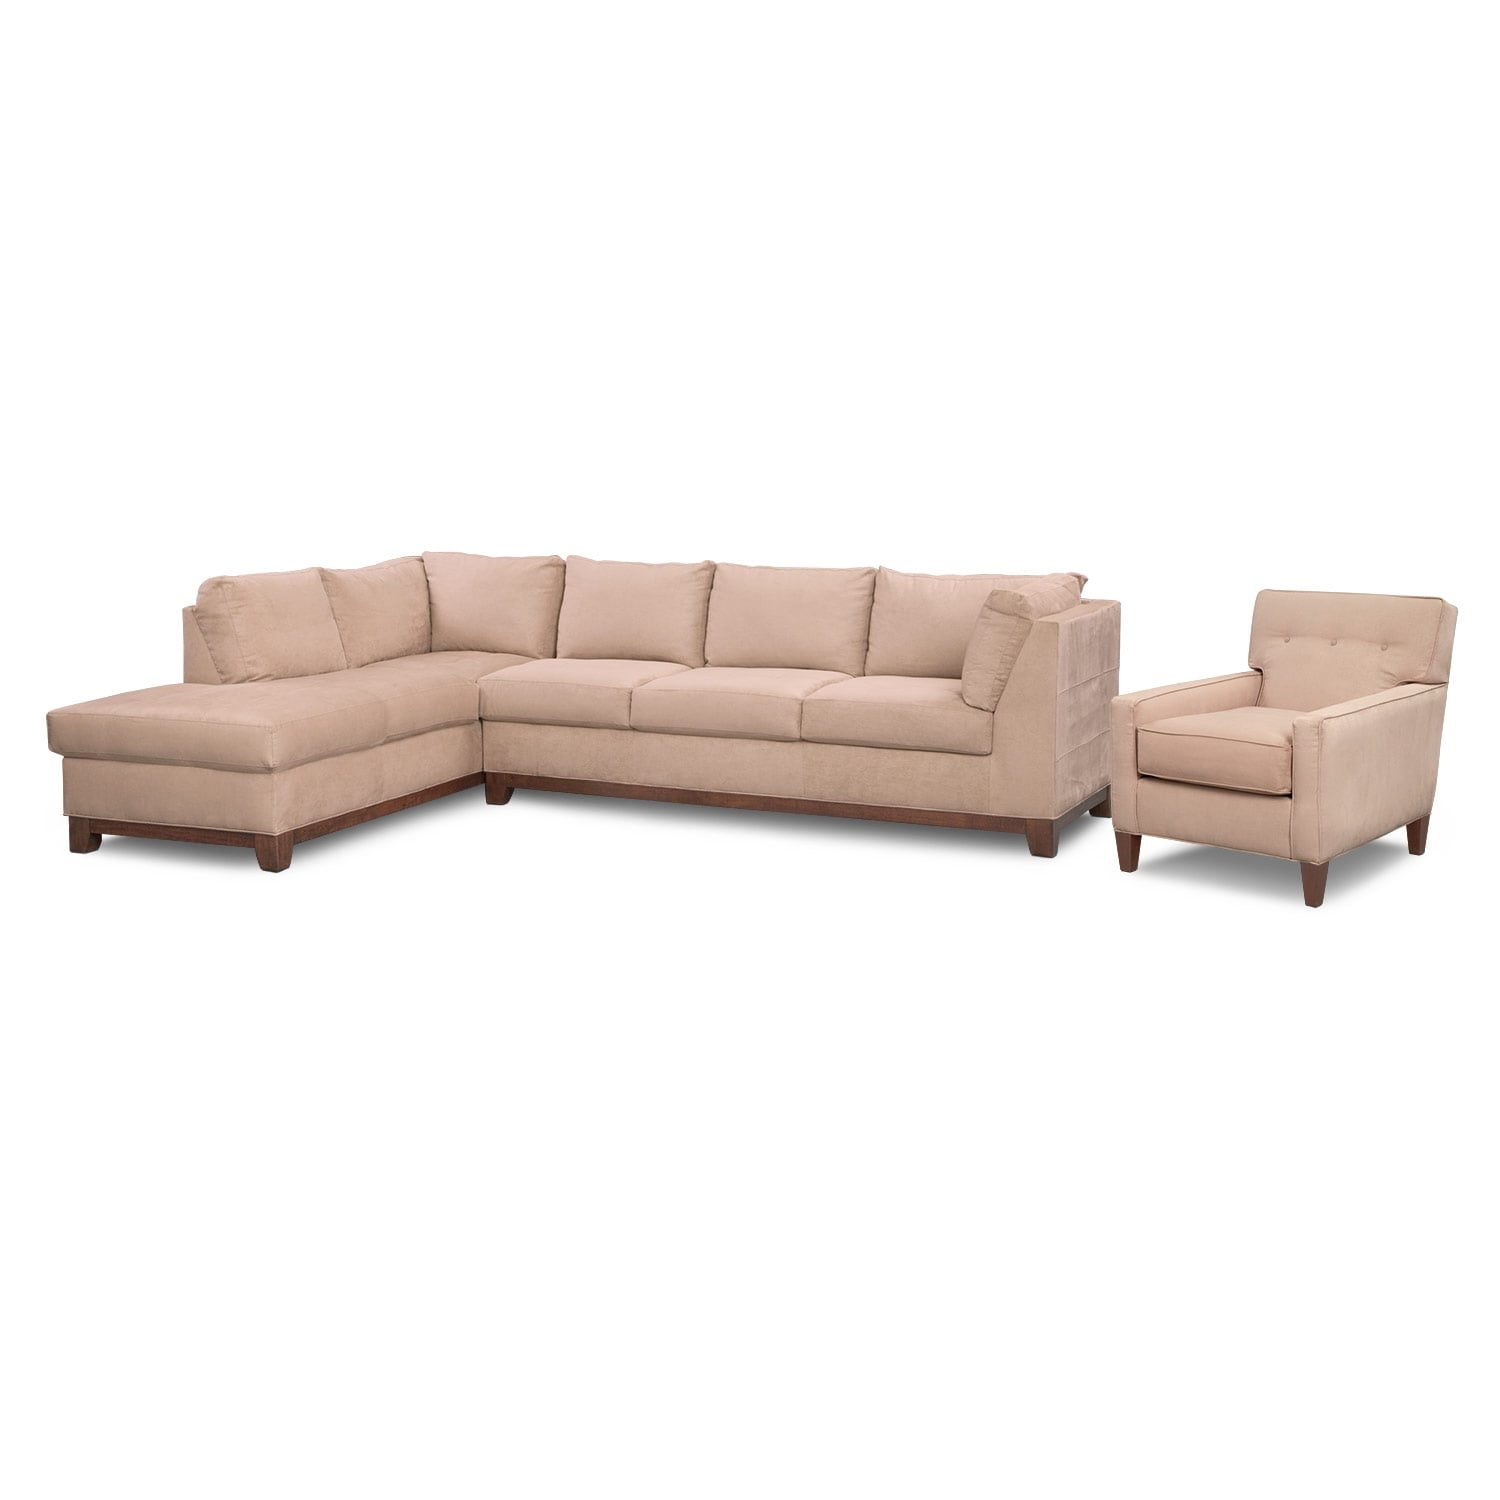 Soho 2 piece sectional with left facing chaise and chair for 2 piece sectional with chaise